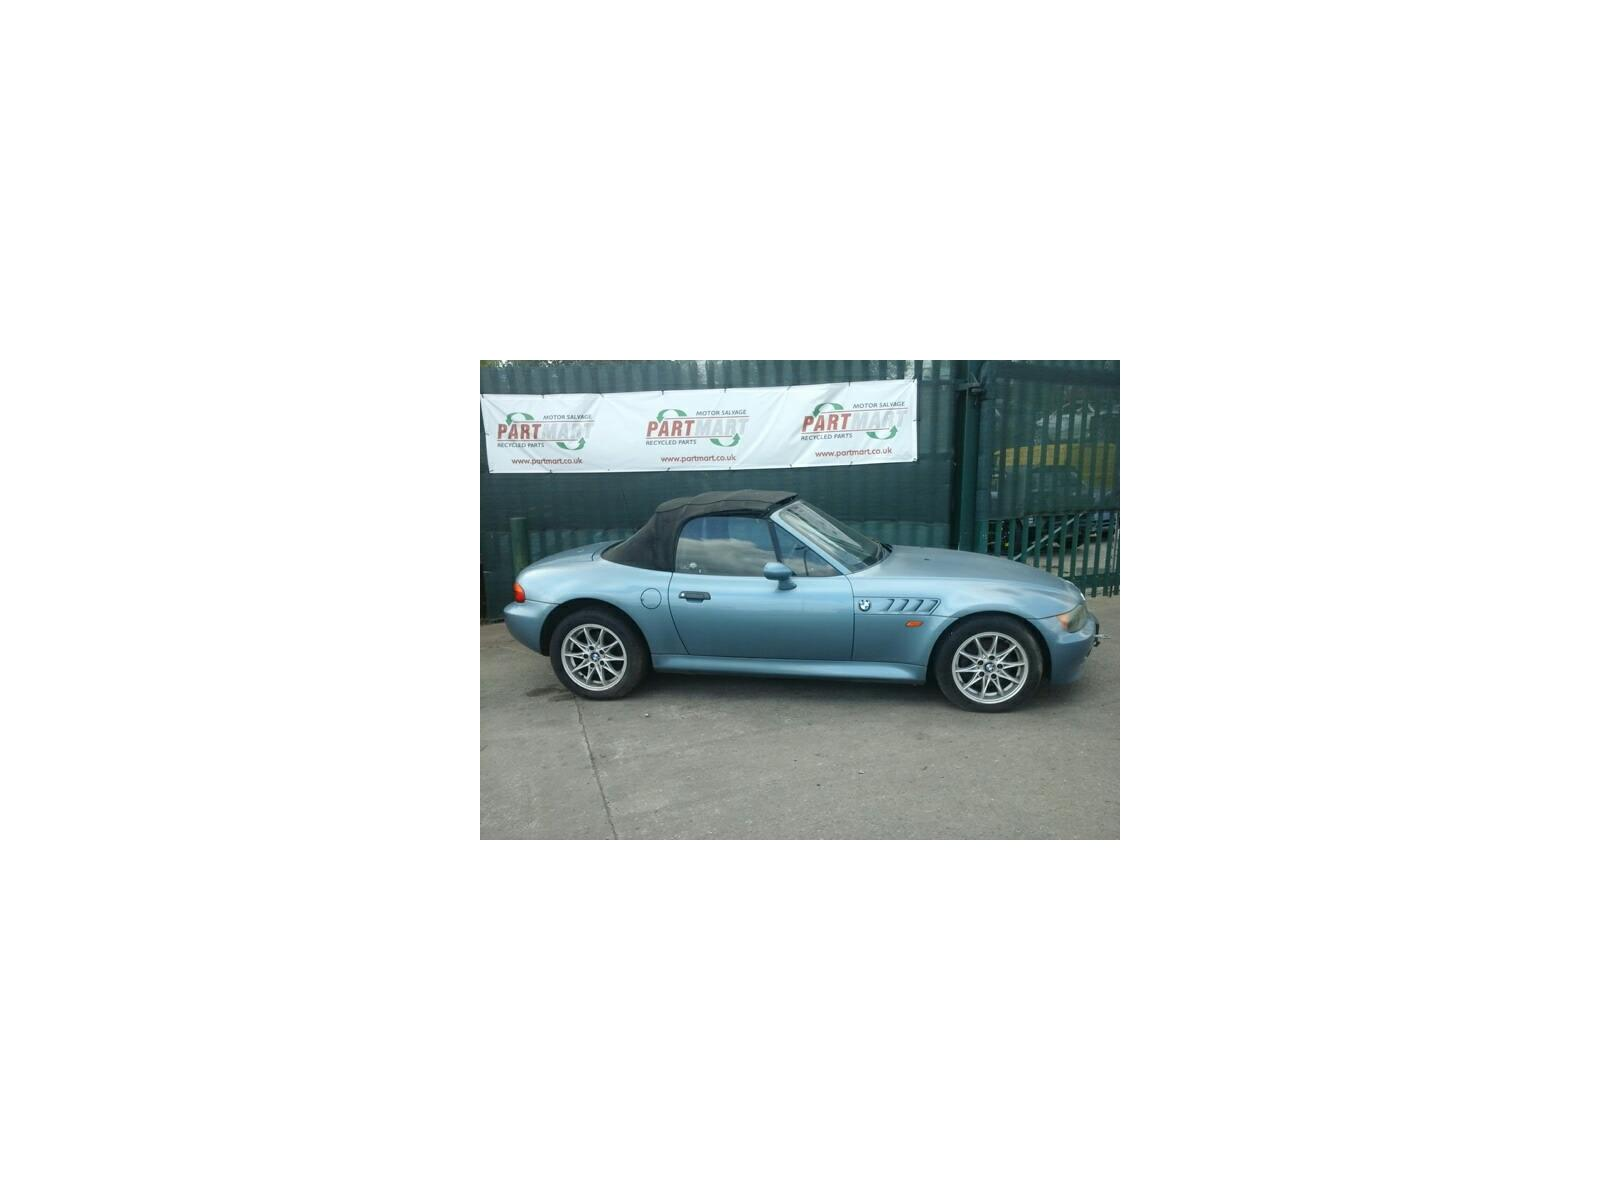 1998 Bmw Z3 1997 To 2003 2 Door Cabriolet Petrol Manual Breaking For Used And Spare Parts From Partmart Automotive Recycling Ltd Motor Salvage Recycled Parts In Hengoed Wales In Wales